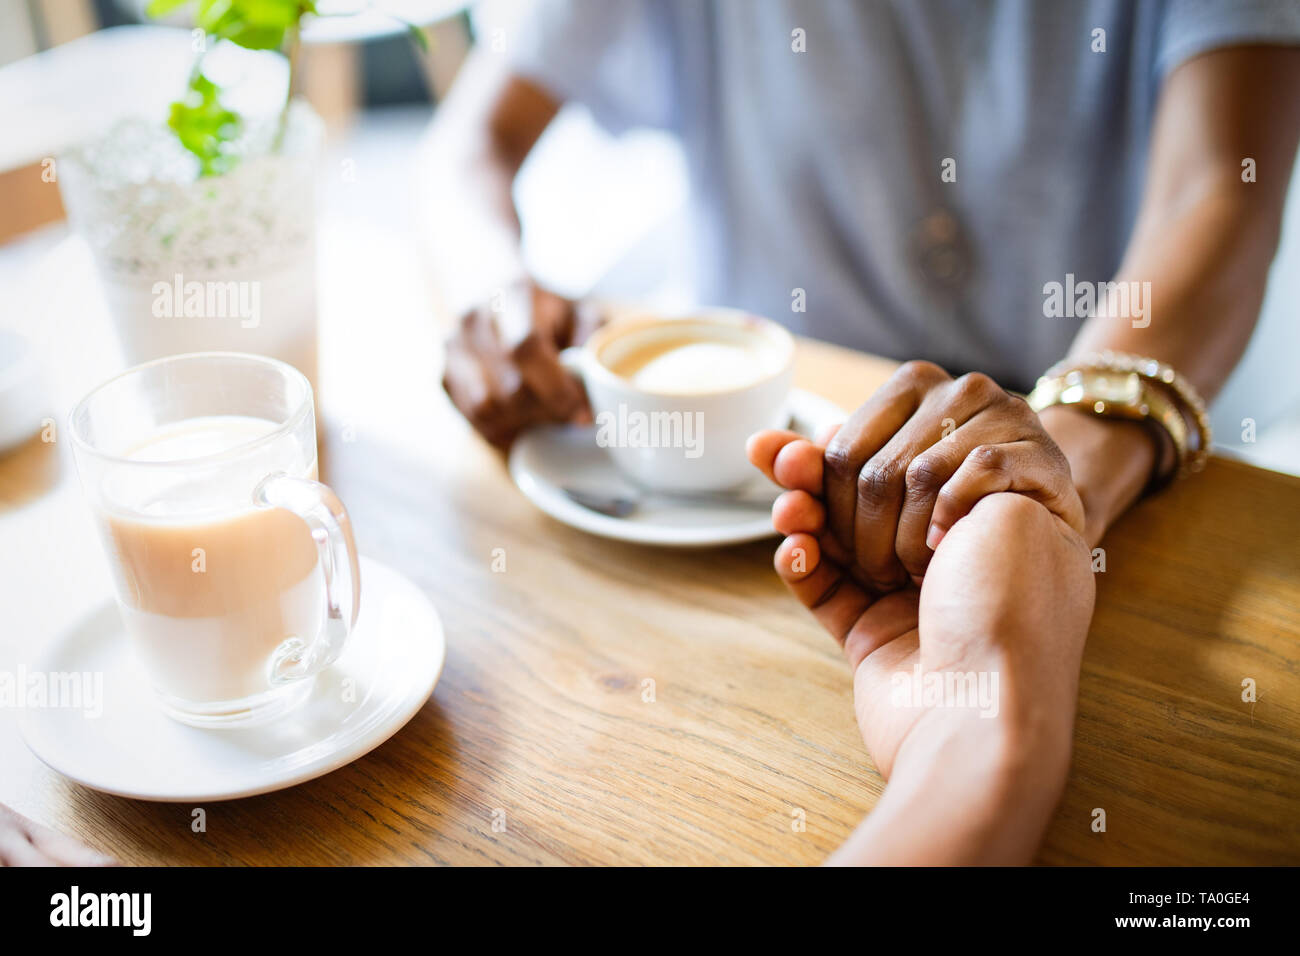 Close-up of couple holding hands while sitting together in cafe with coffee cups on the table - Stock Image